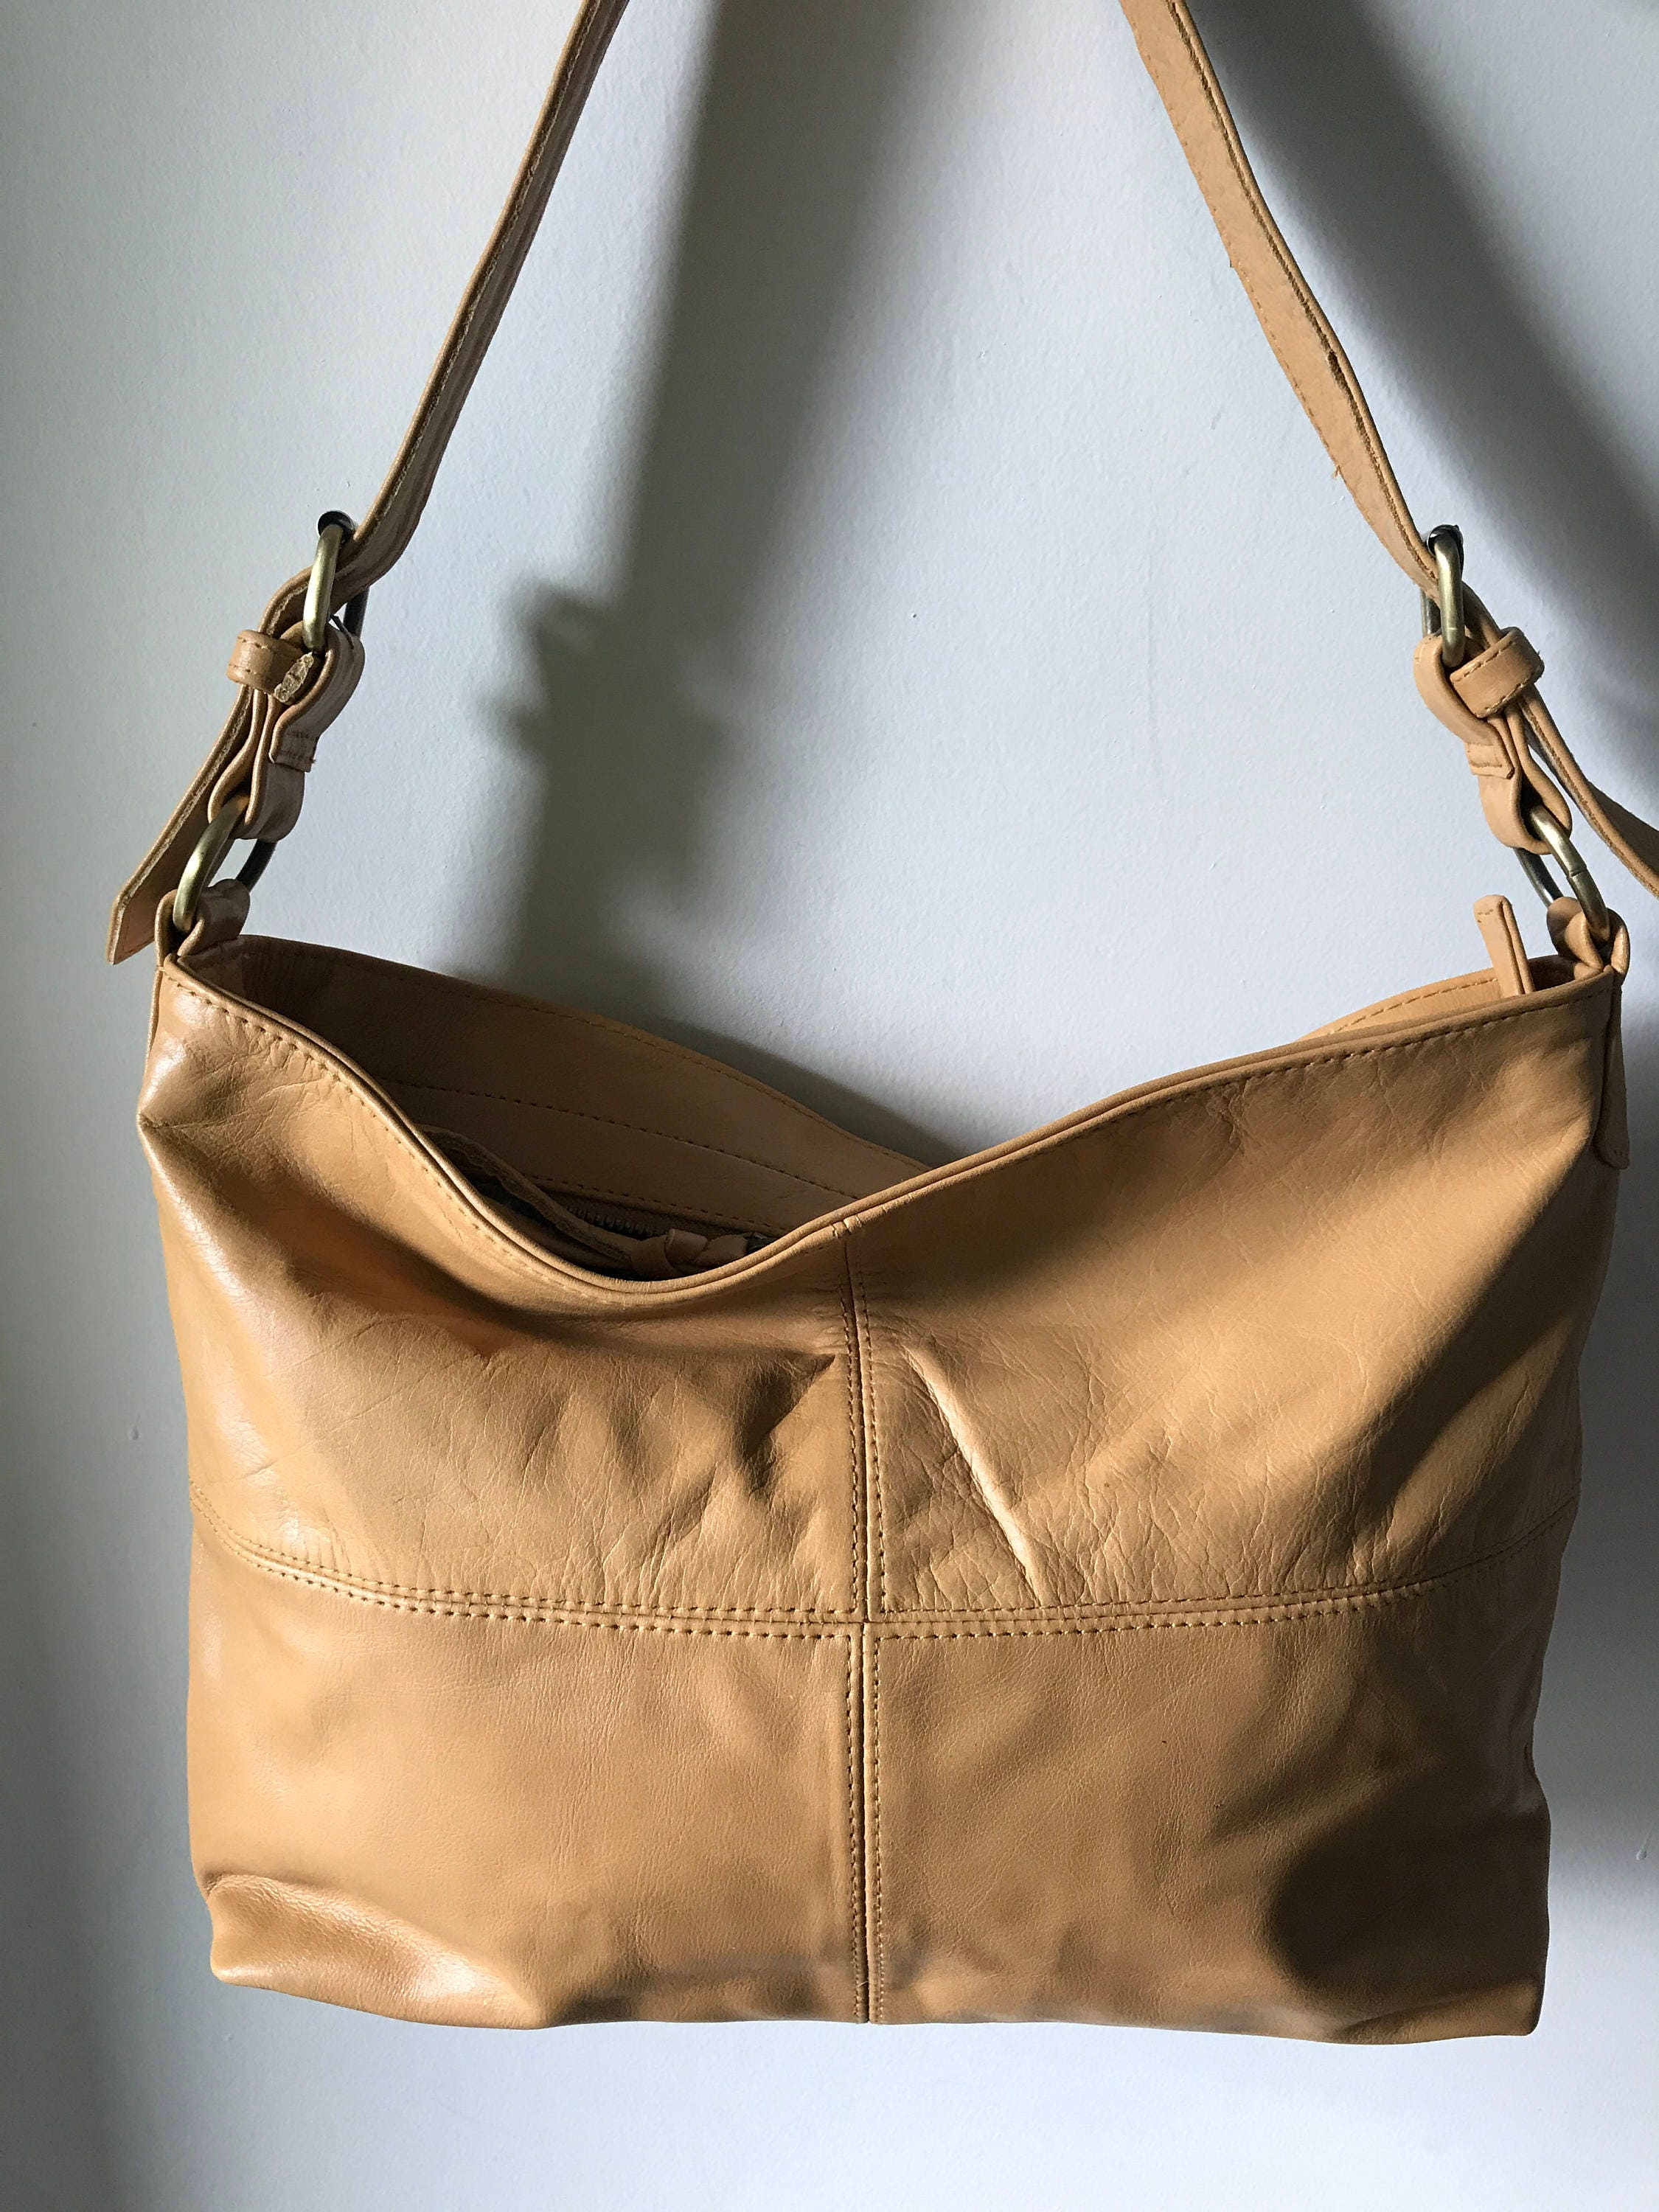 e5d898cdce Brown Leather shoulder Tote Bag.Single strap with adjustable belt features.Quality